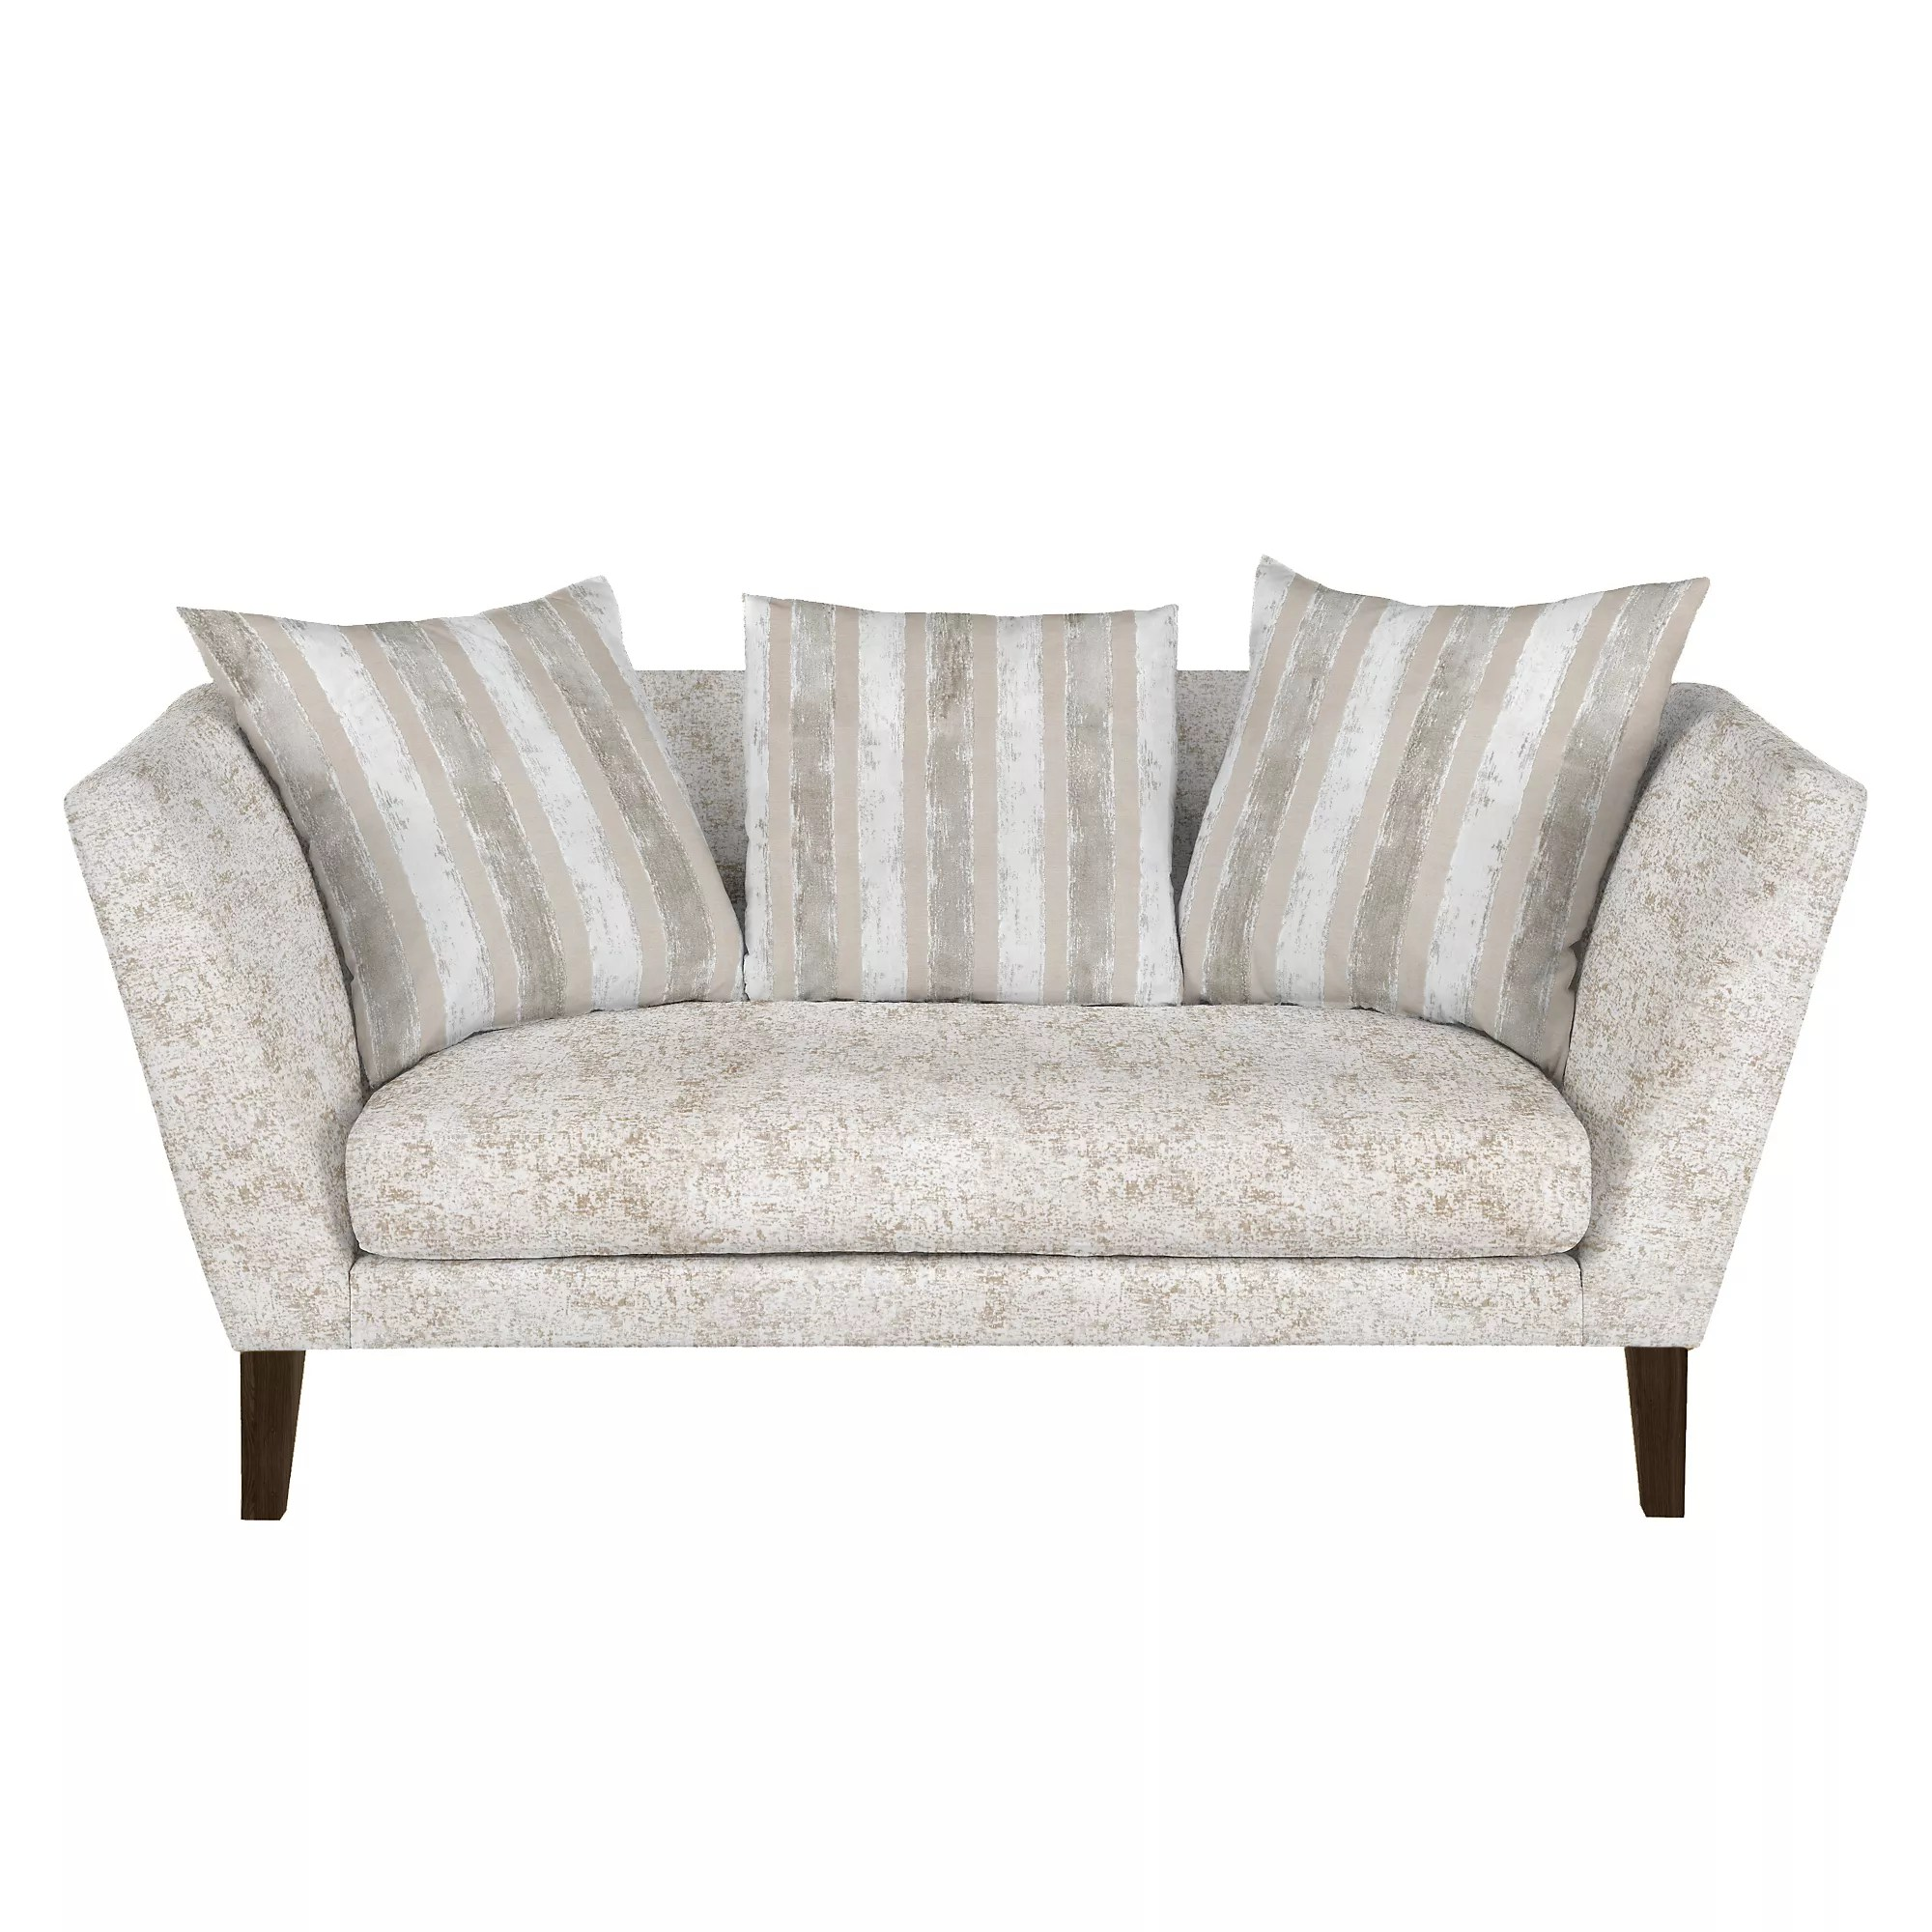 regency sofa john lewis luxury beds medium marlow putty stripe at buyjohn online johnlewis